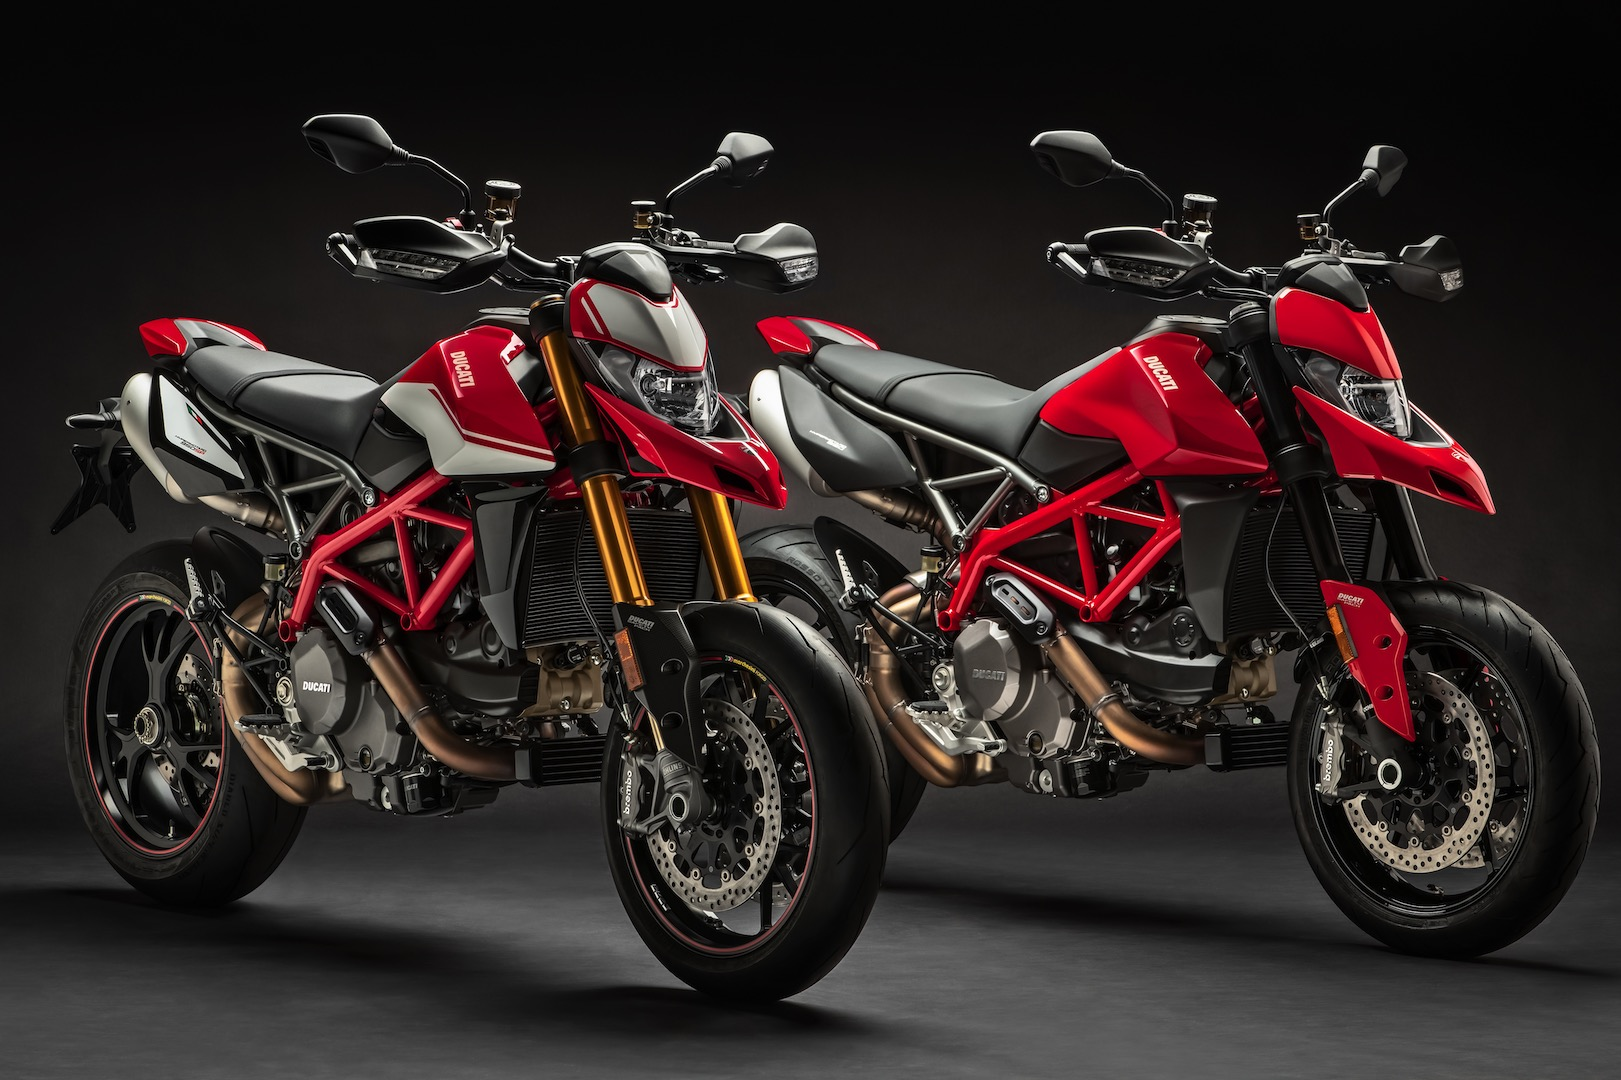 2019 Ducati Hypermotard 950 First Look 18 Fast Facts